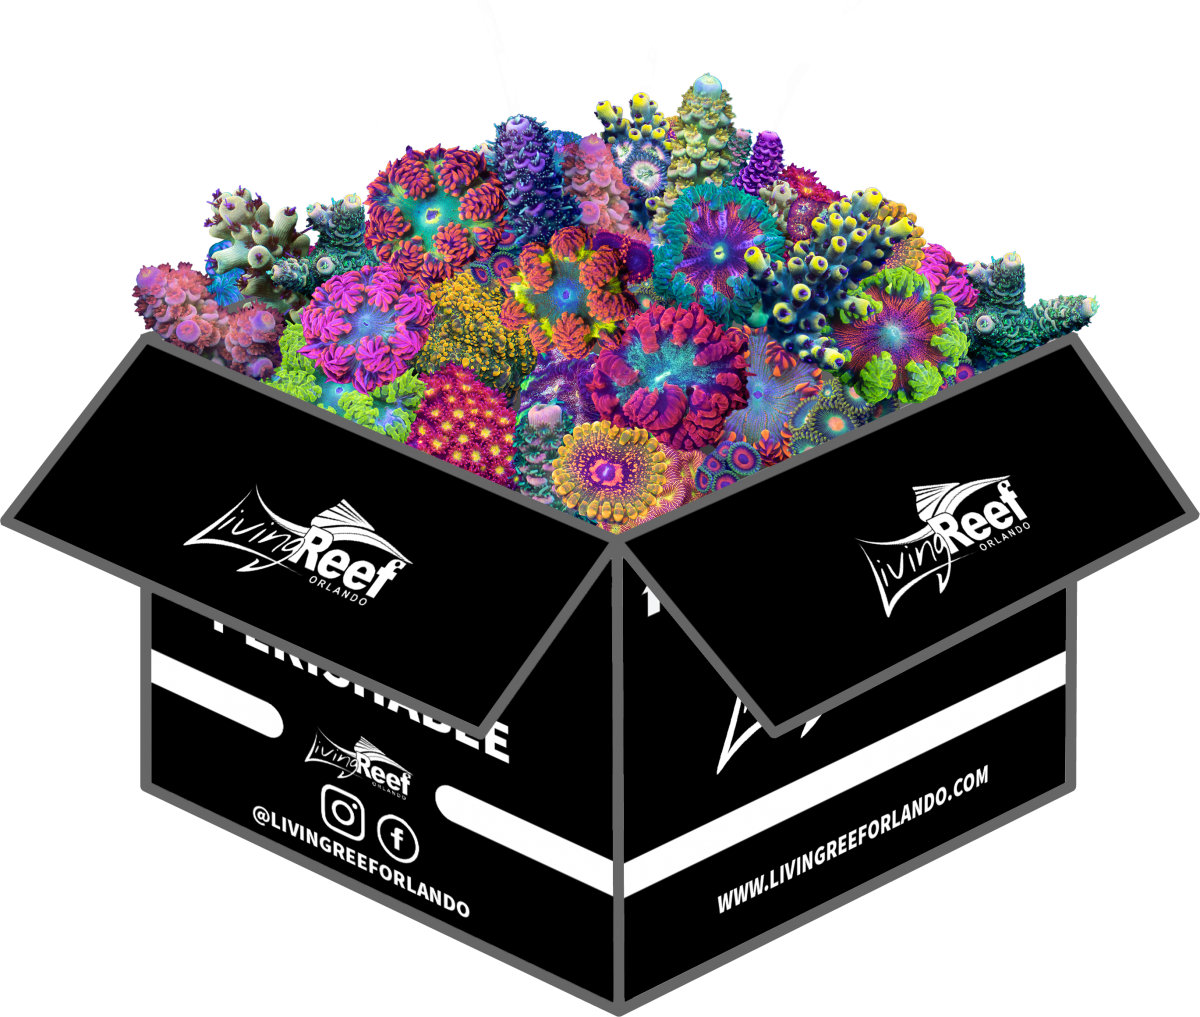 BOX With Coral.png